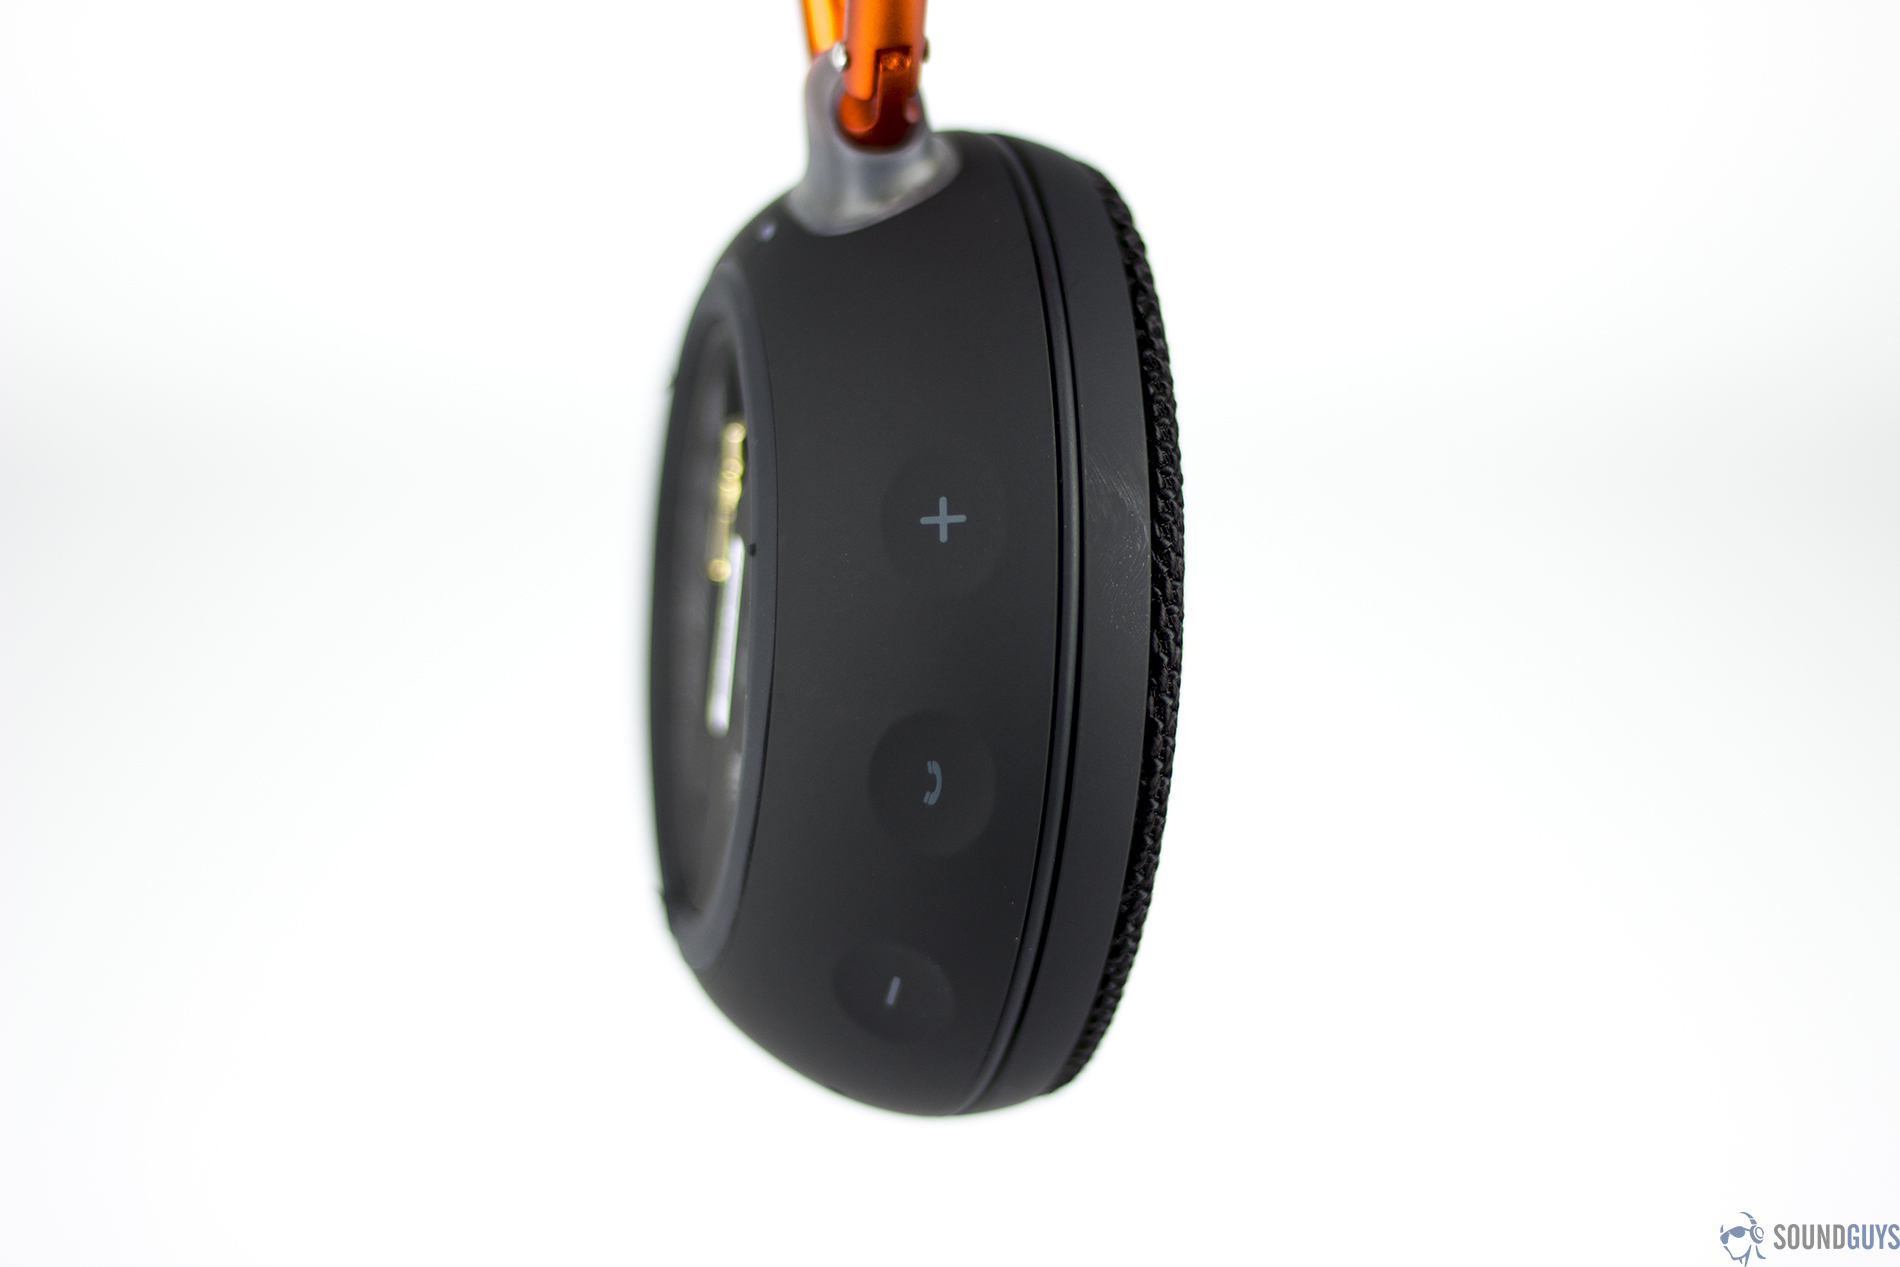 On its side, the JBL Clip 2 has volume and playback controls, so you